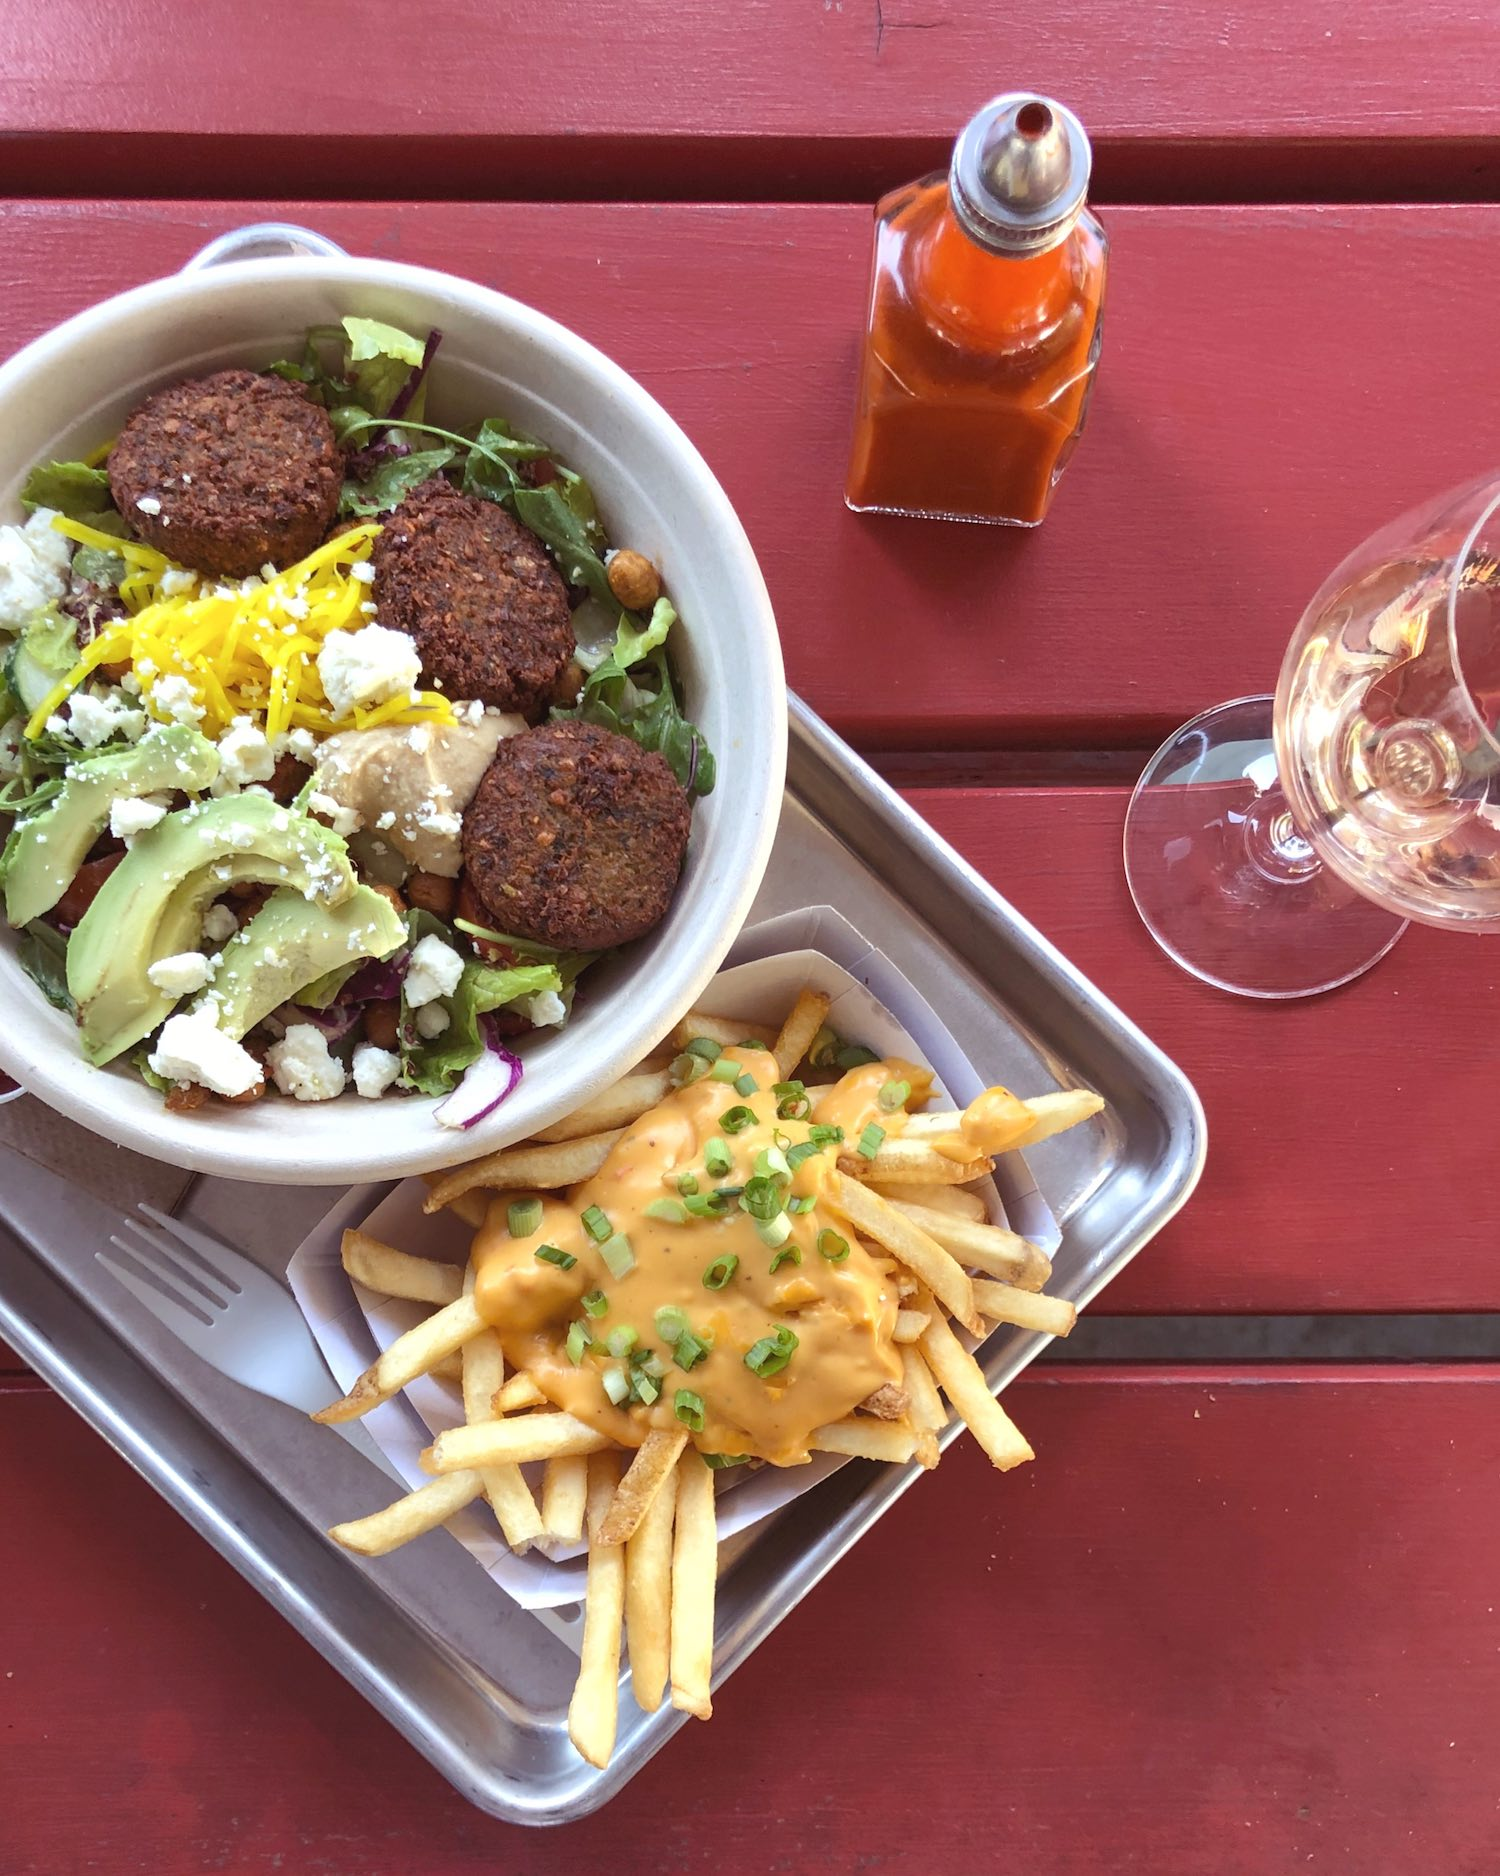 Falafel Salad and Cheese Fries at Gott's Roadside Napa